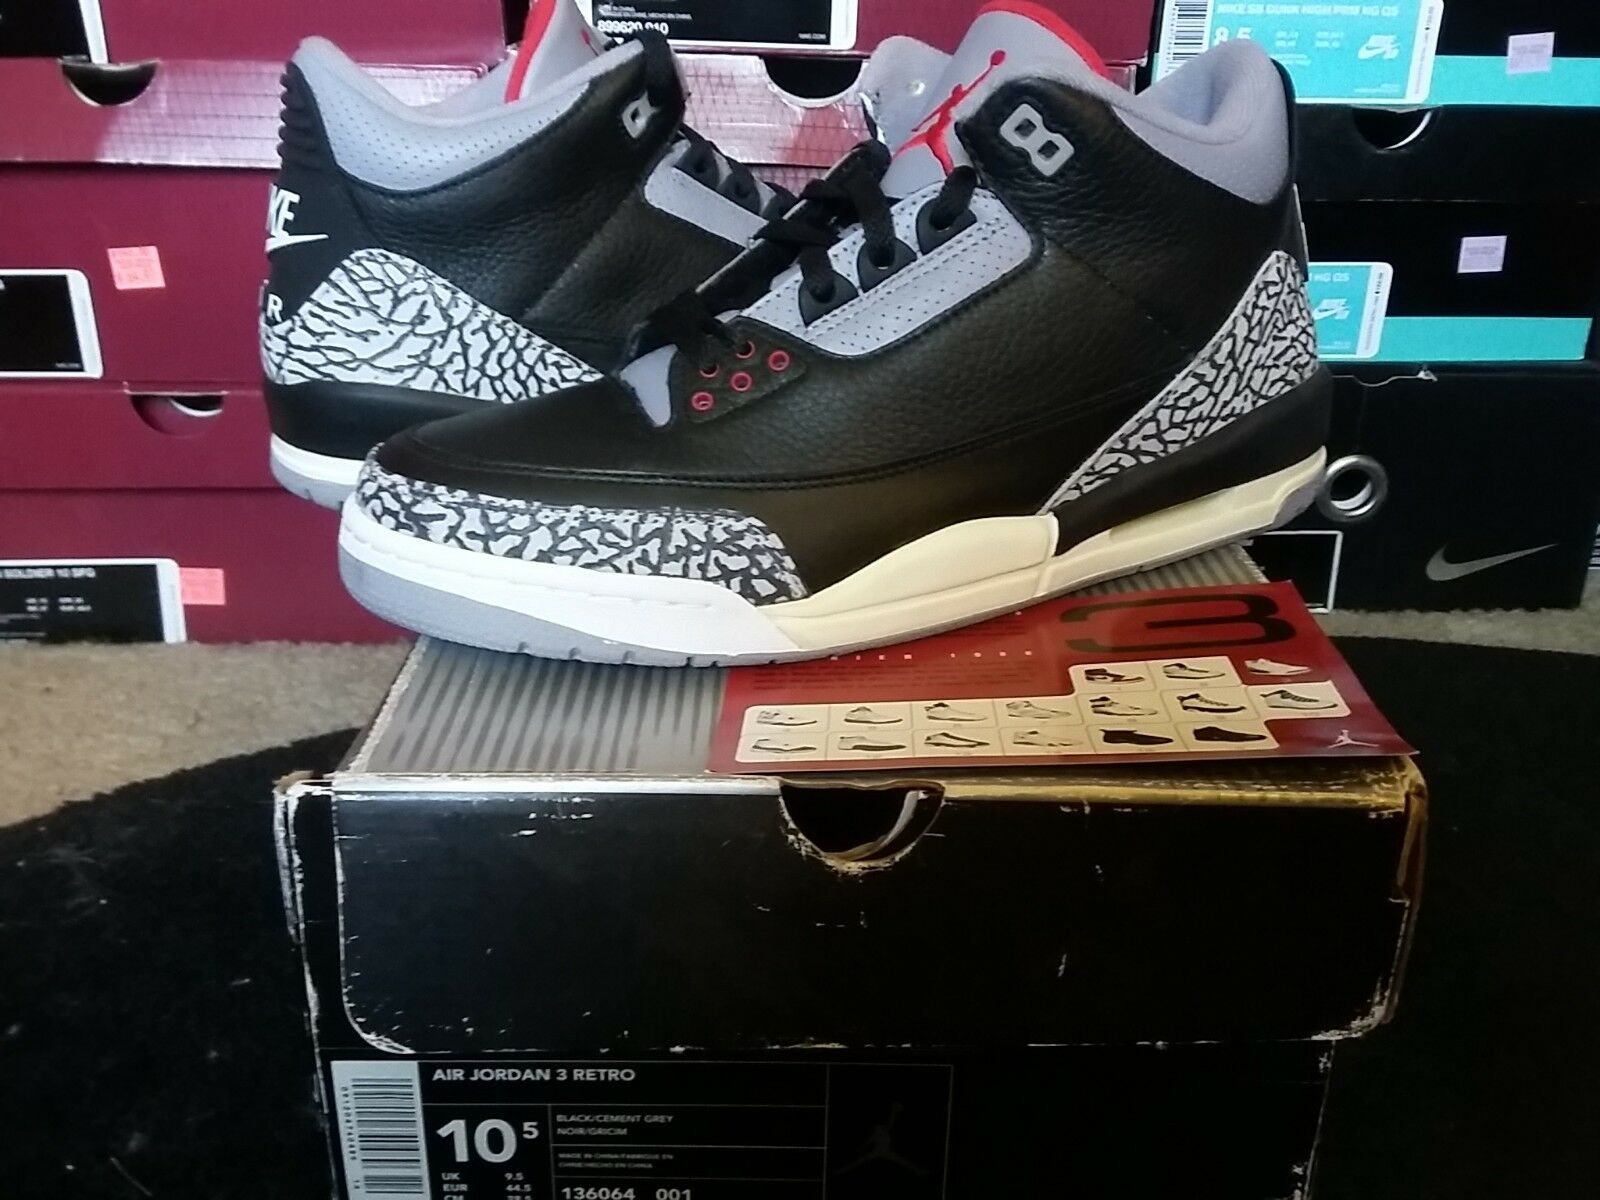 Nike Air Jordan III 3 Retro OG 2001 Black Cement Grey White Fire Red 136064 001